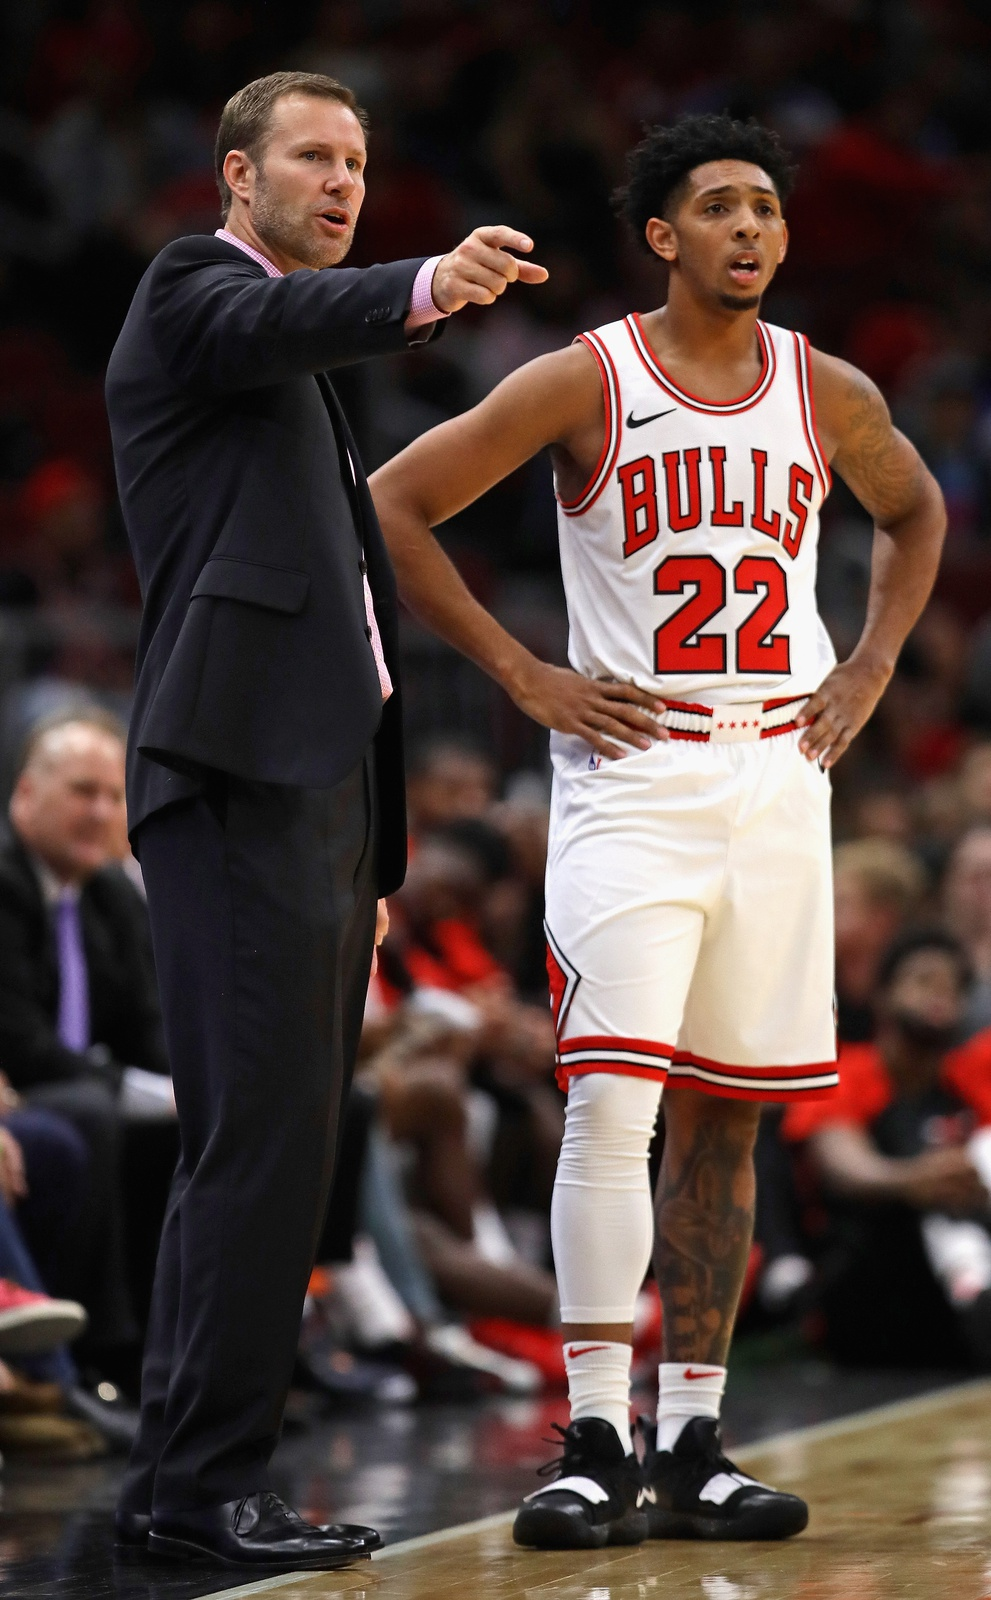 Head coach Fred Hoiberg of the Chicago Bulls gives instruction to Cameron Payne #22 against the Indiana Pacers during a preseason game at the United Center on October 10, 2018 in Chicago, Illinois.